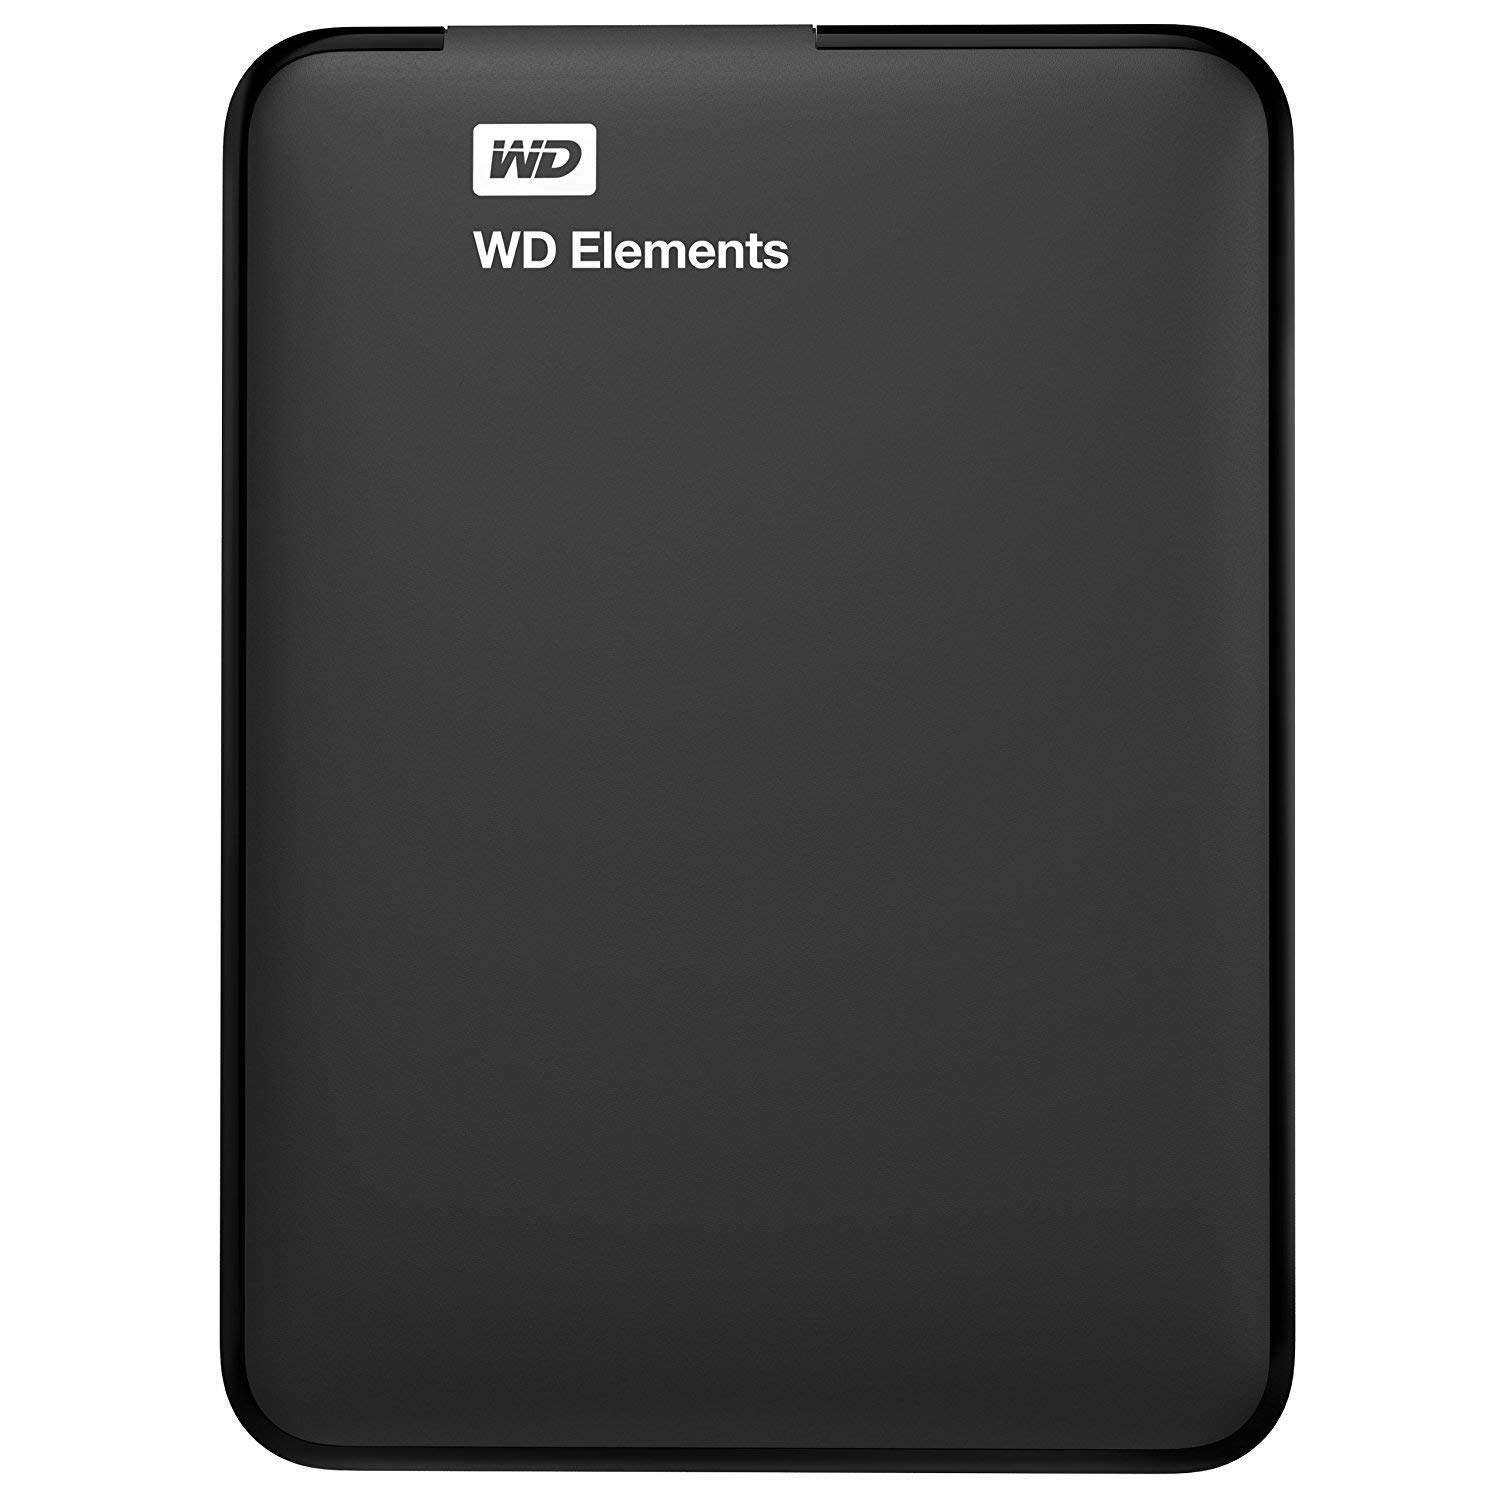 WD Elements Festplatte amazon